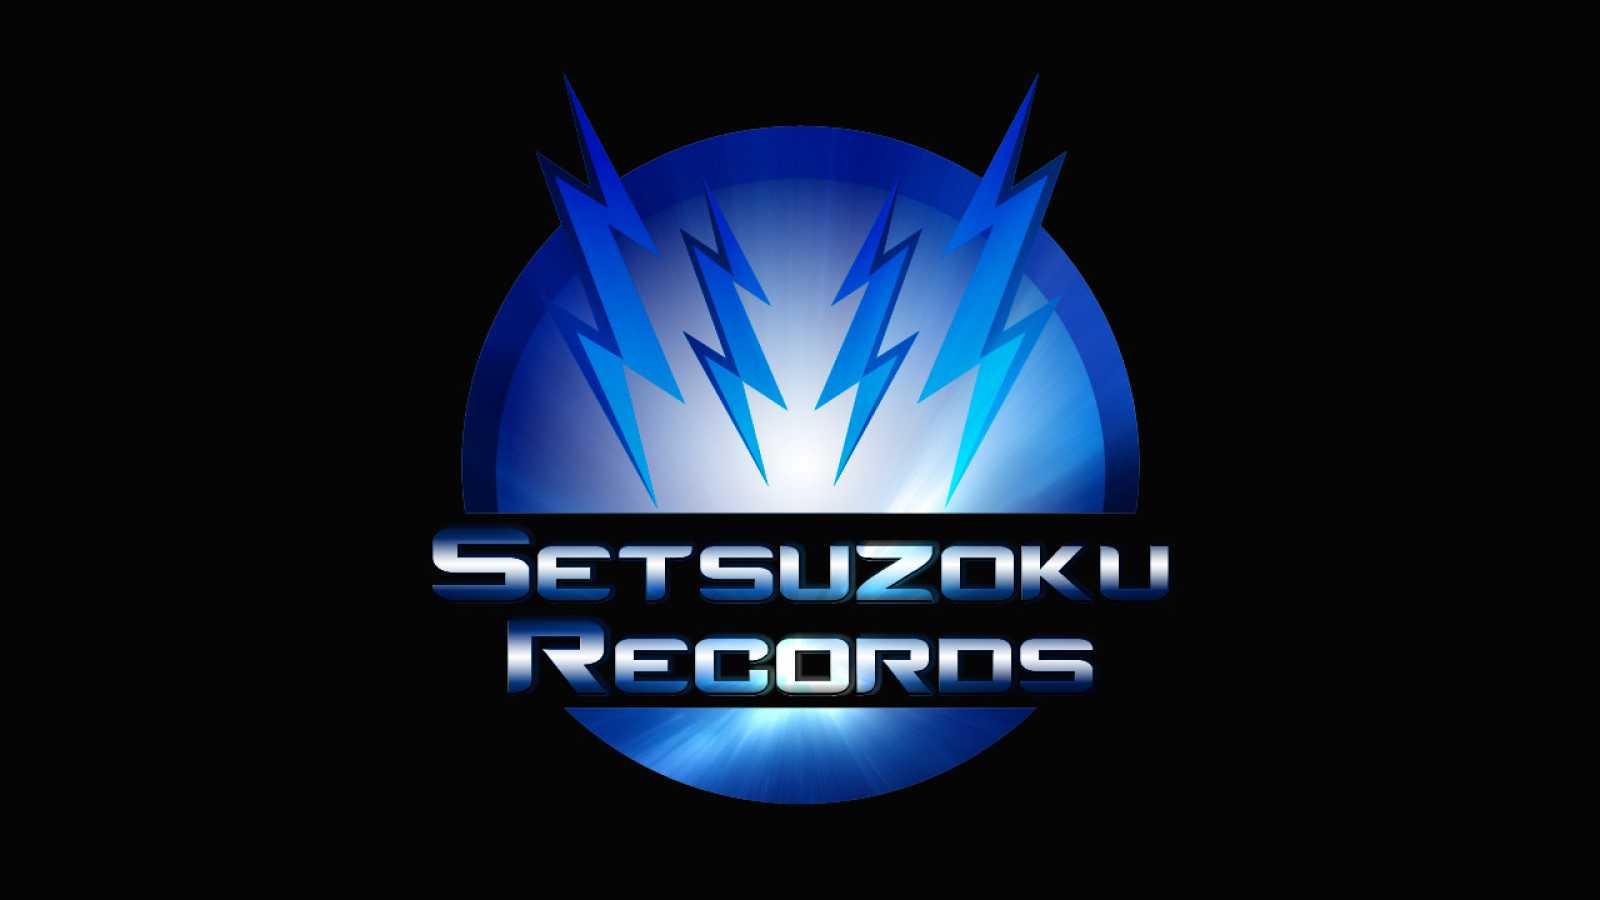 ORIONlive Launches New Record Label Dedicated to Japanese Artists  © SETSUZOKU RECORDS. All rights reserved.